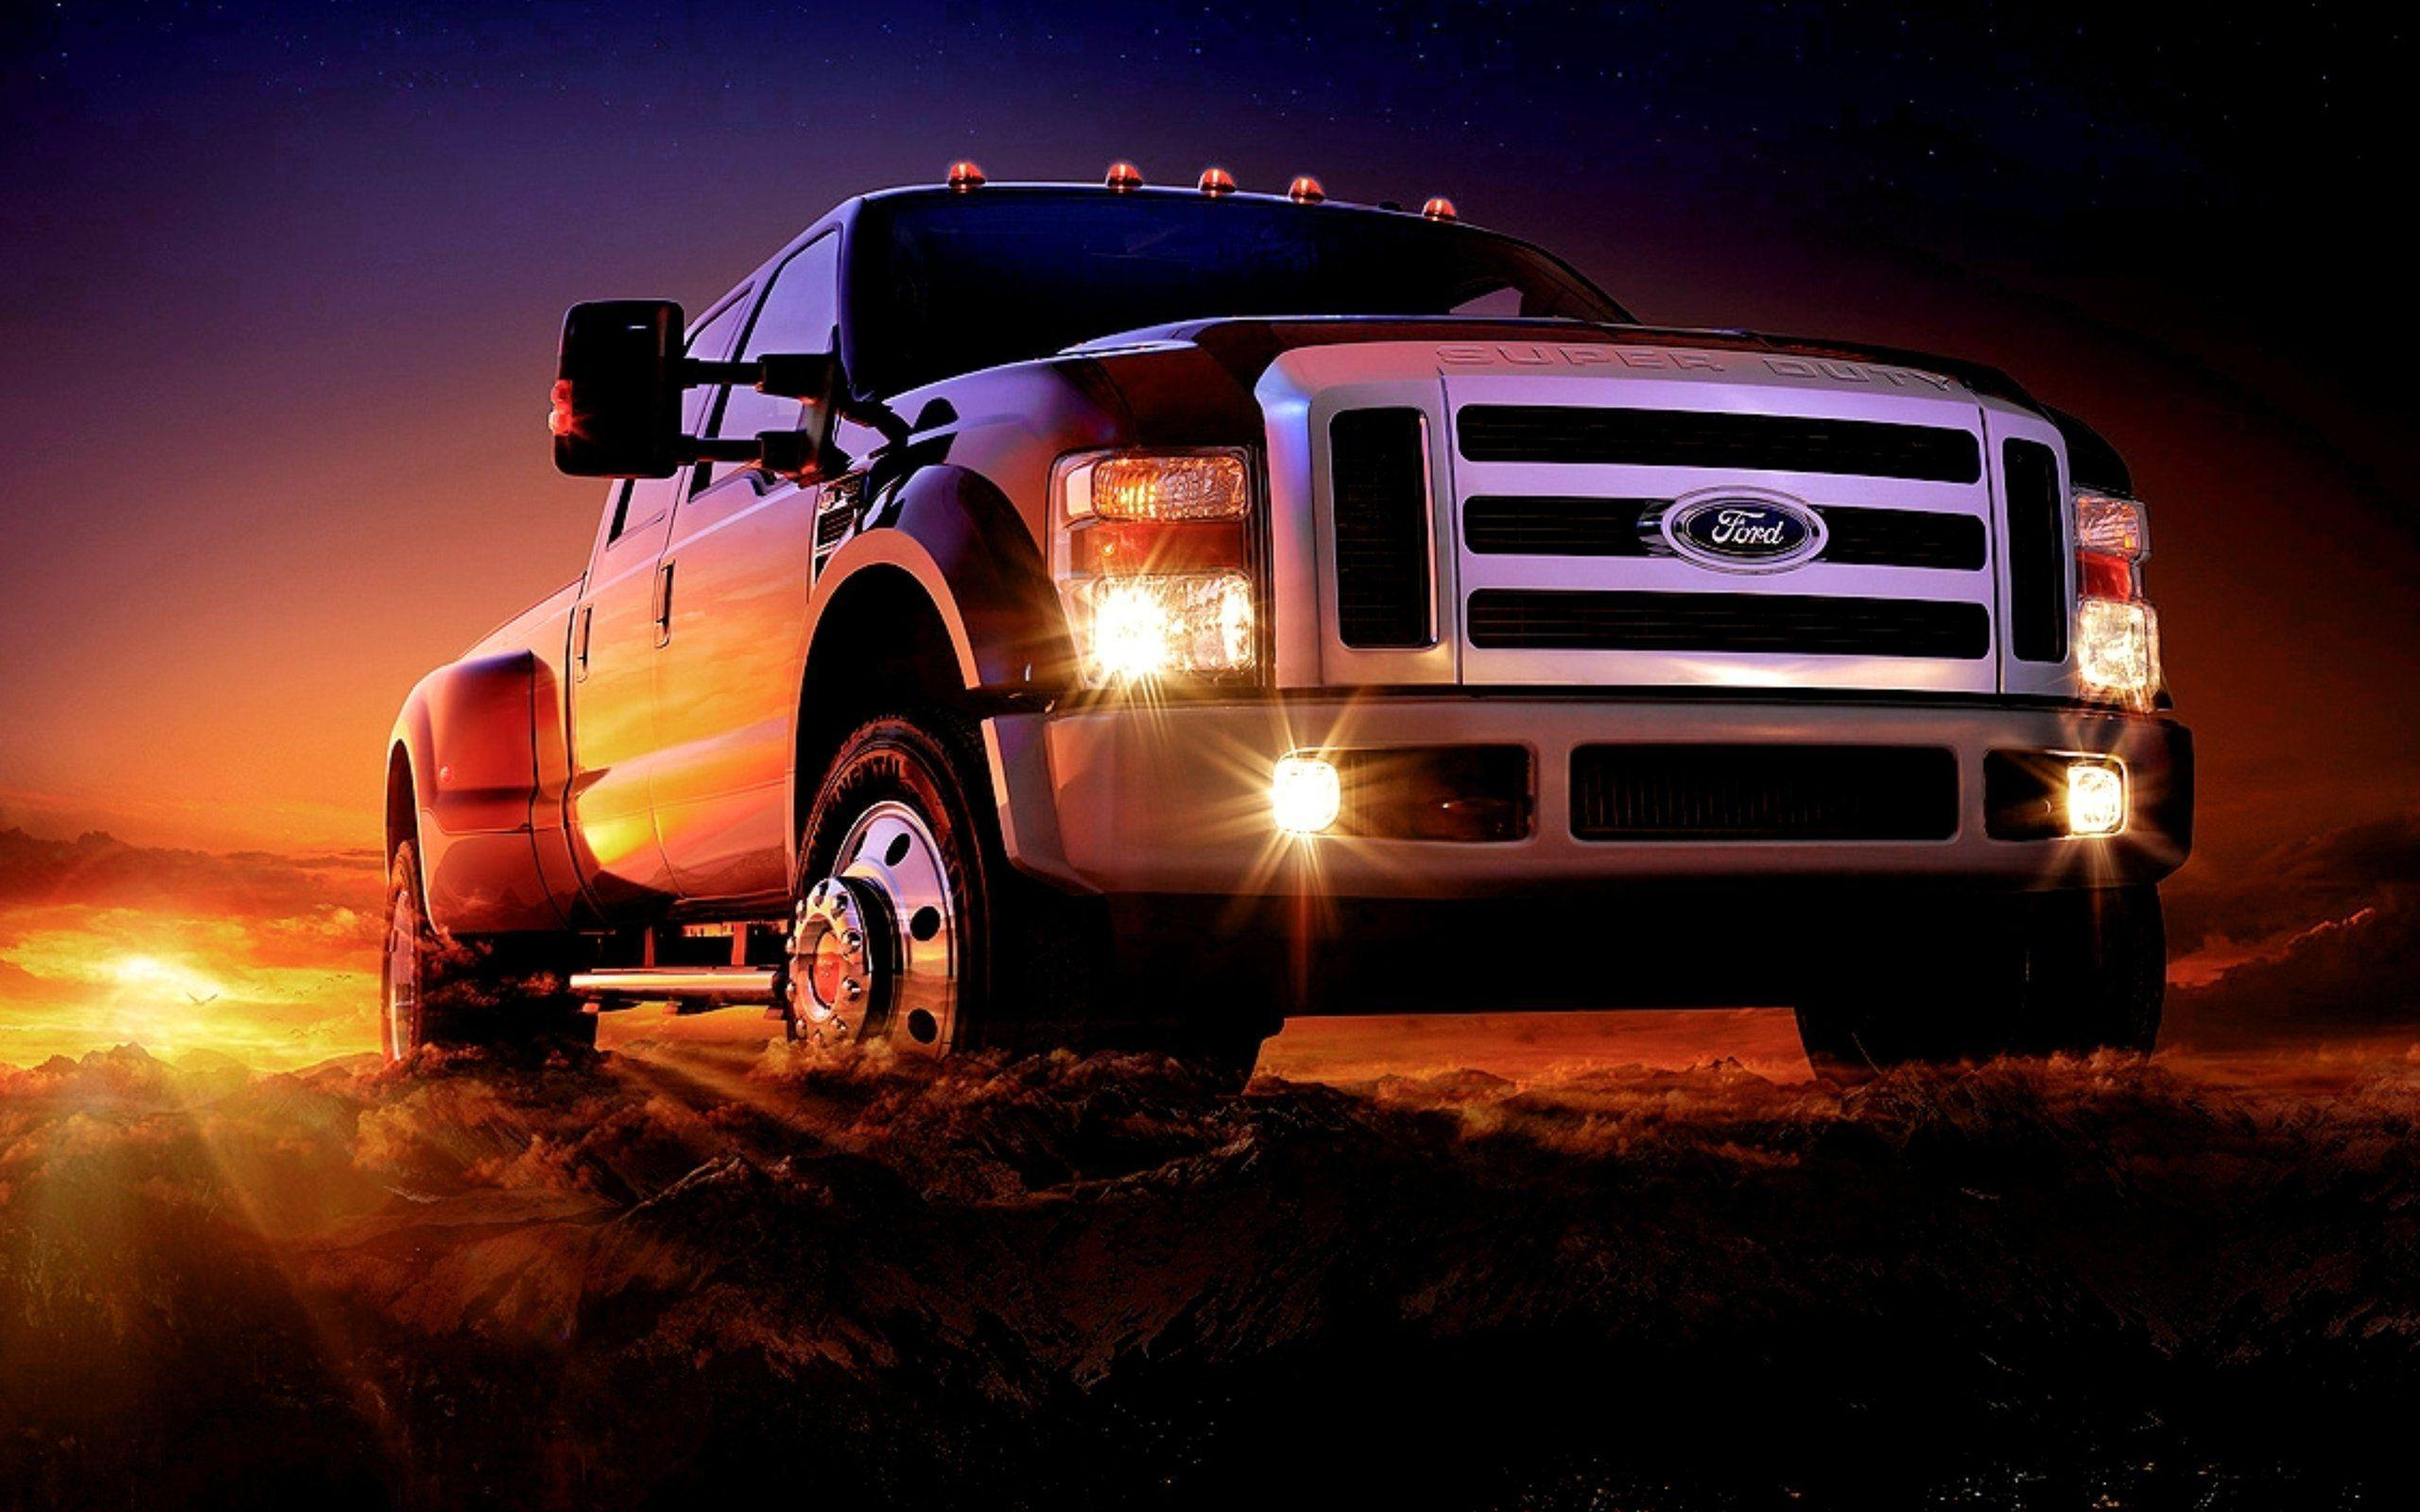 Ford Truck Wallpapers